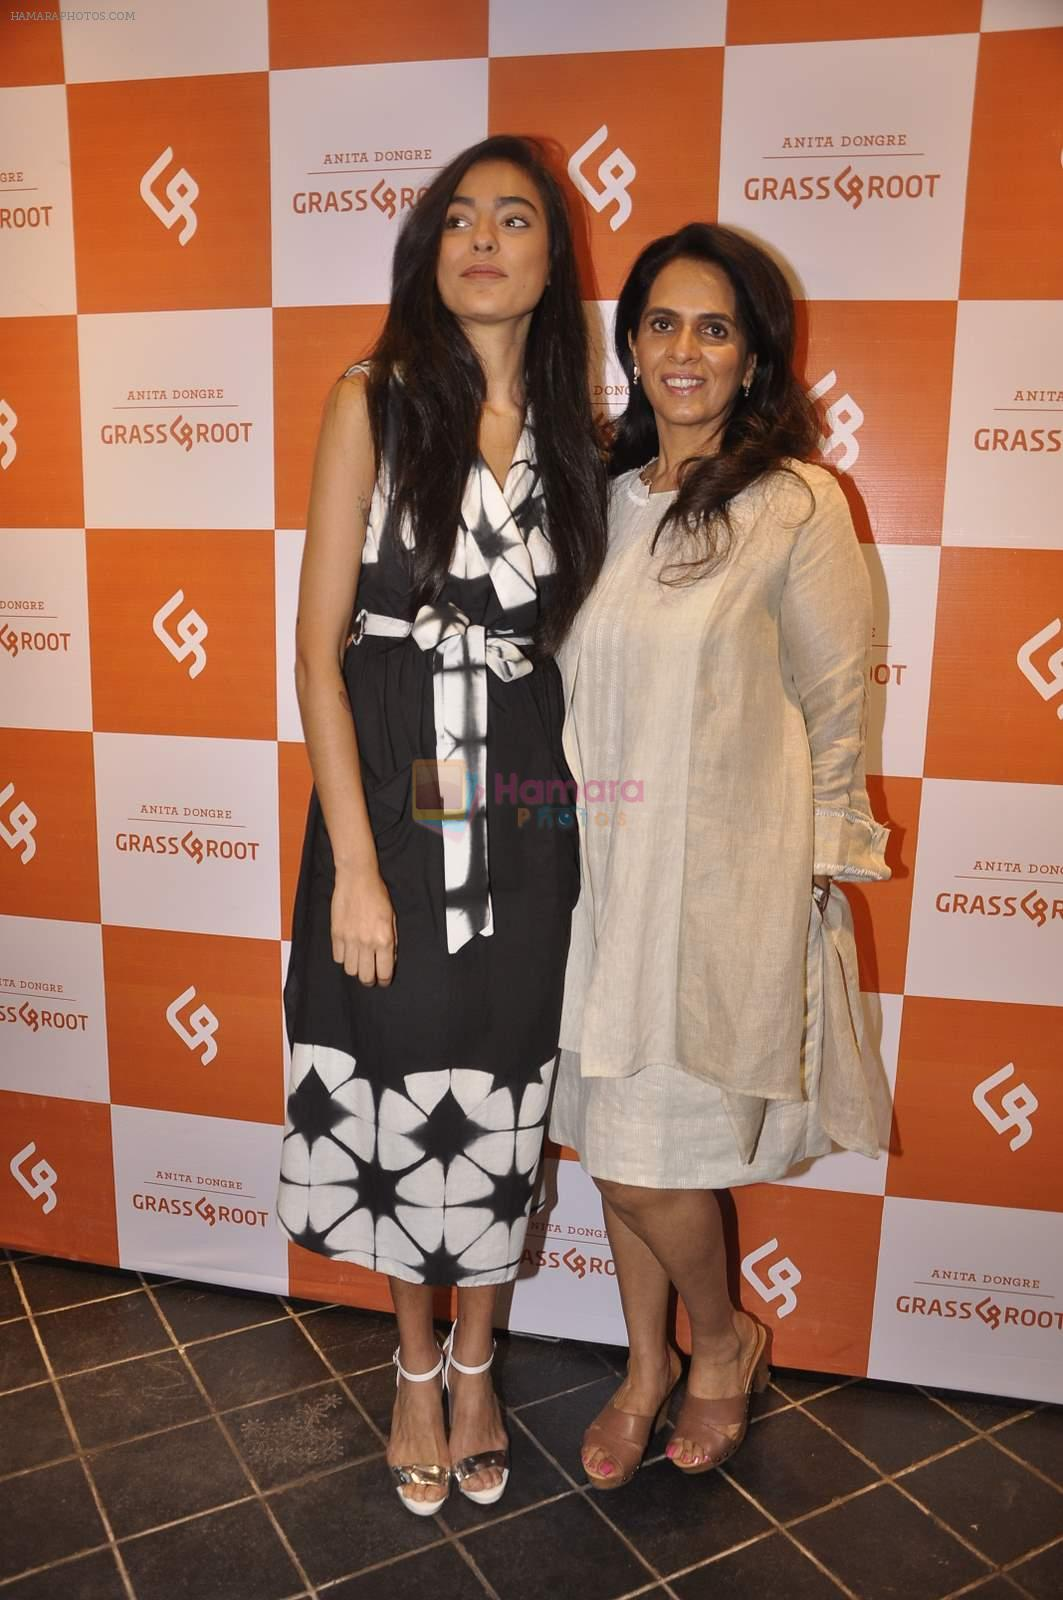 Anita Dongre's Grass Root store launch in Khar on 12th Aug 2015